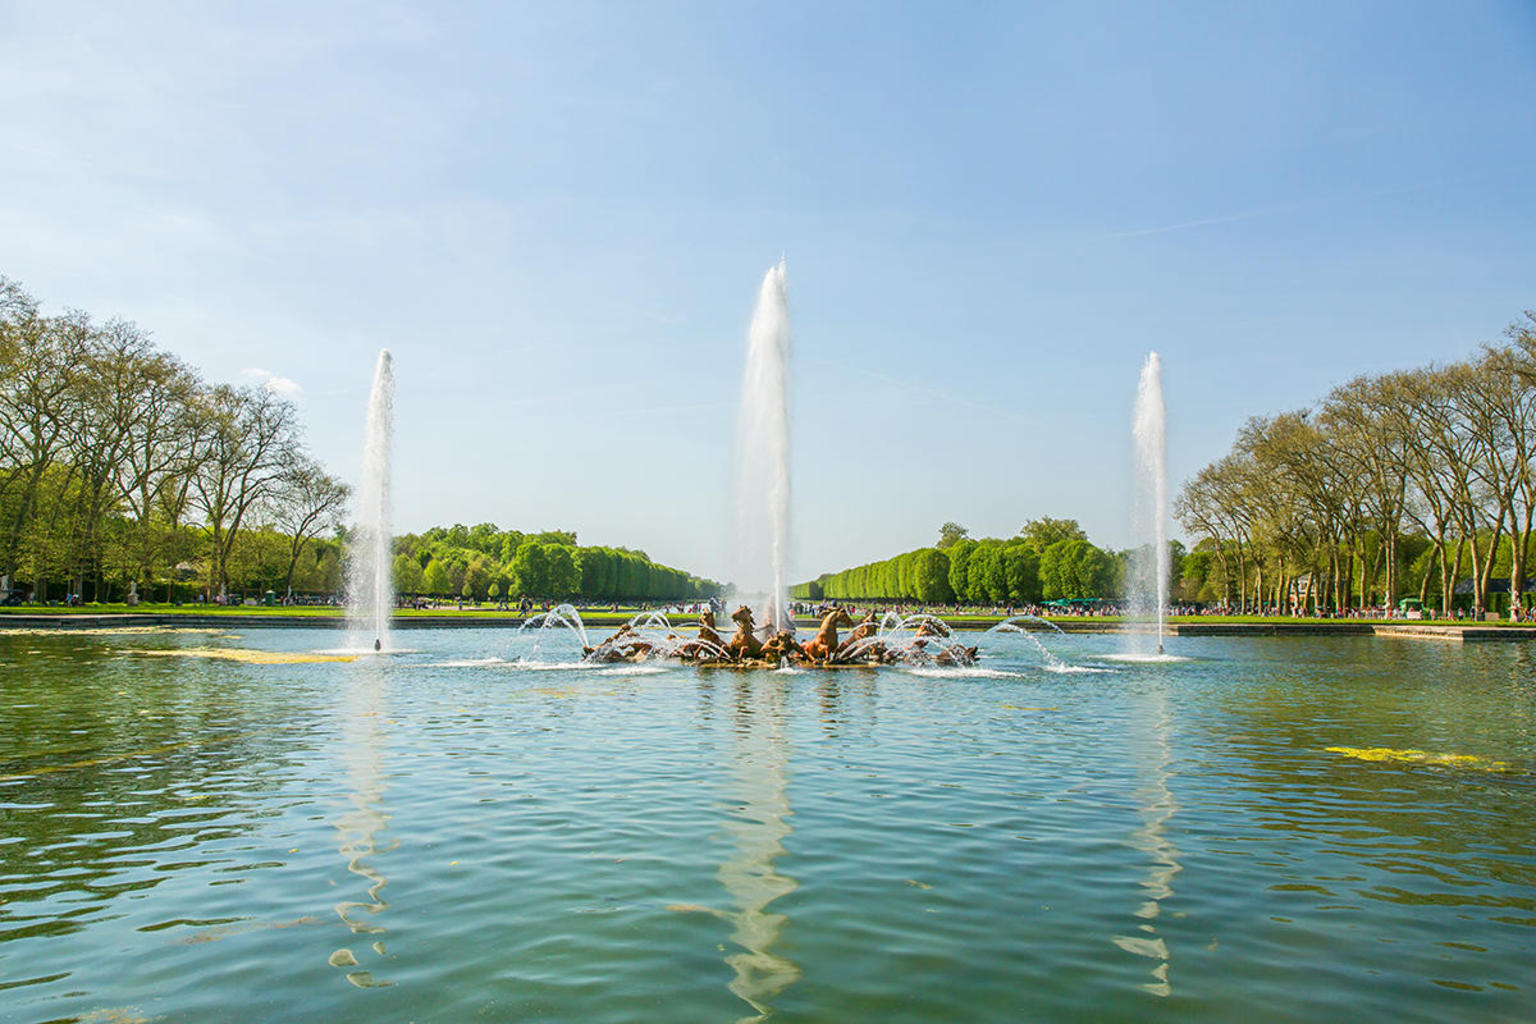 MORE PHOTOS, Small Group Versailles Palace, Gardens & Fountains, Hamlet, Day Trip Guided Tour